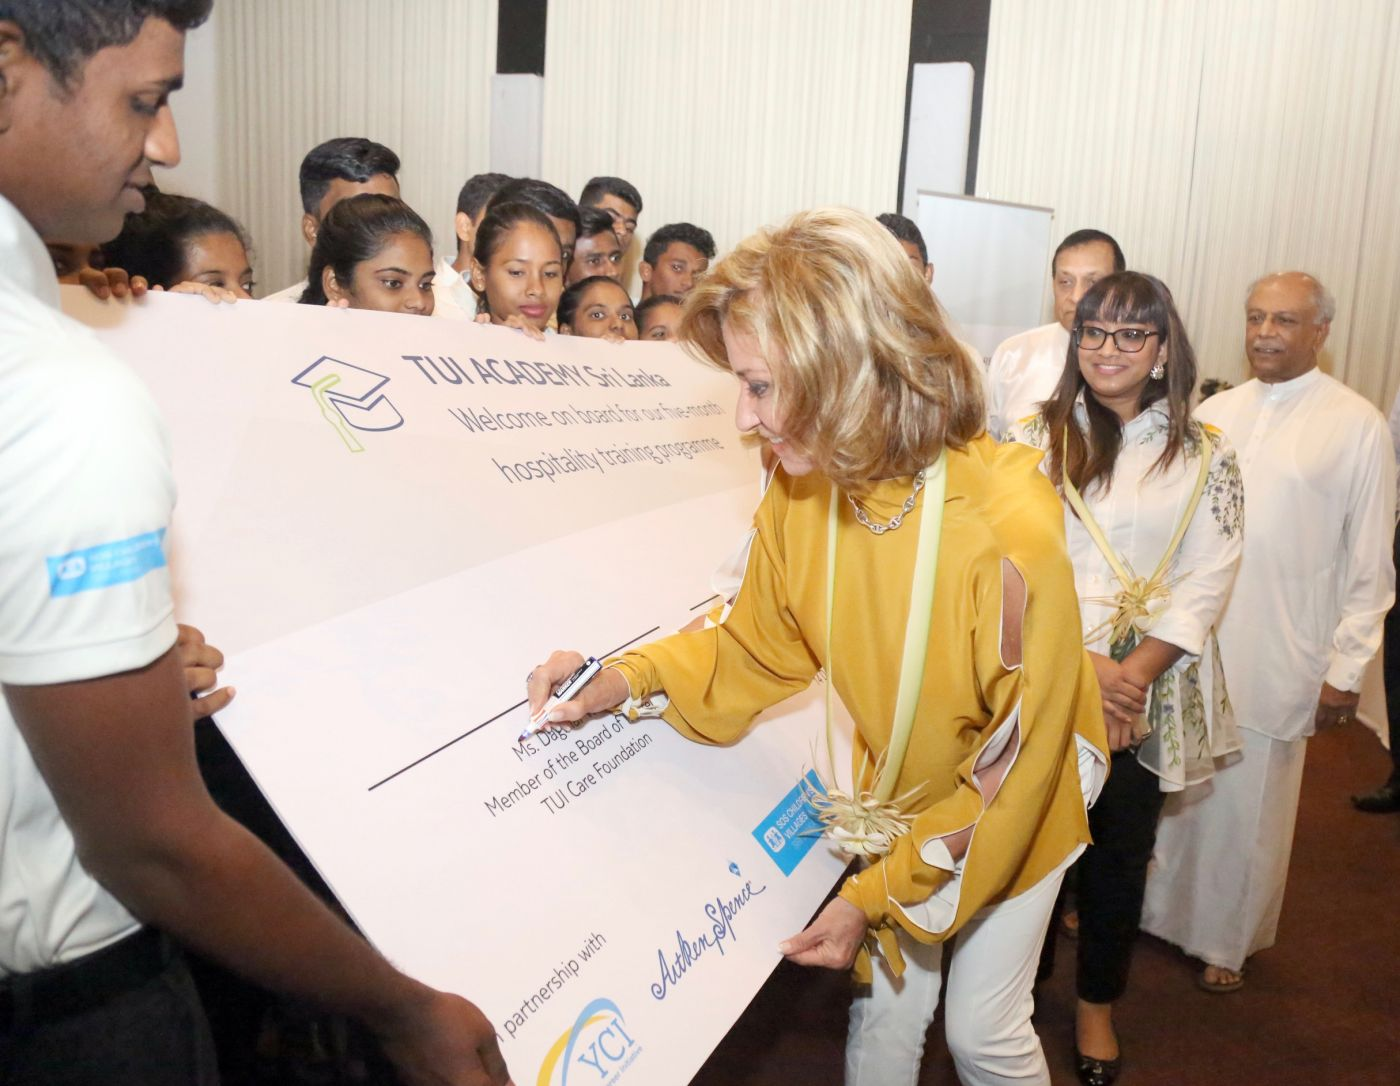 Ms Dagmar Wöhrl, Board Member of the TUI Care Foundation, at the launch event for our youth employment project TUI Academy Sri Lanka with young hotel staff.